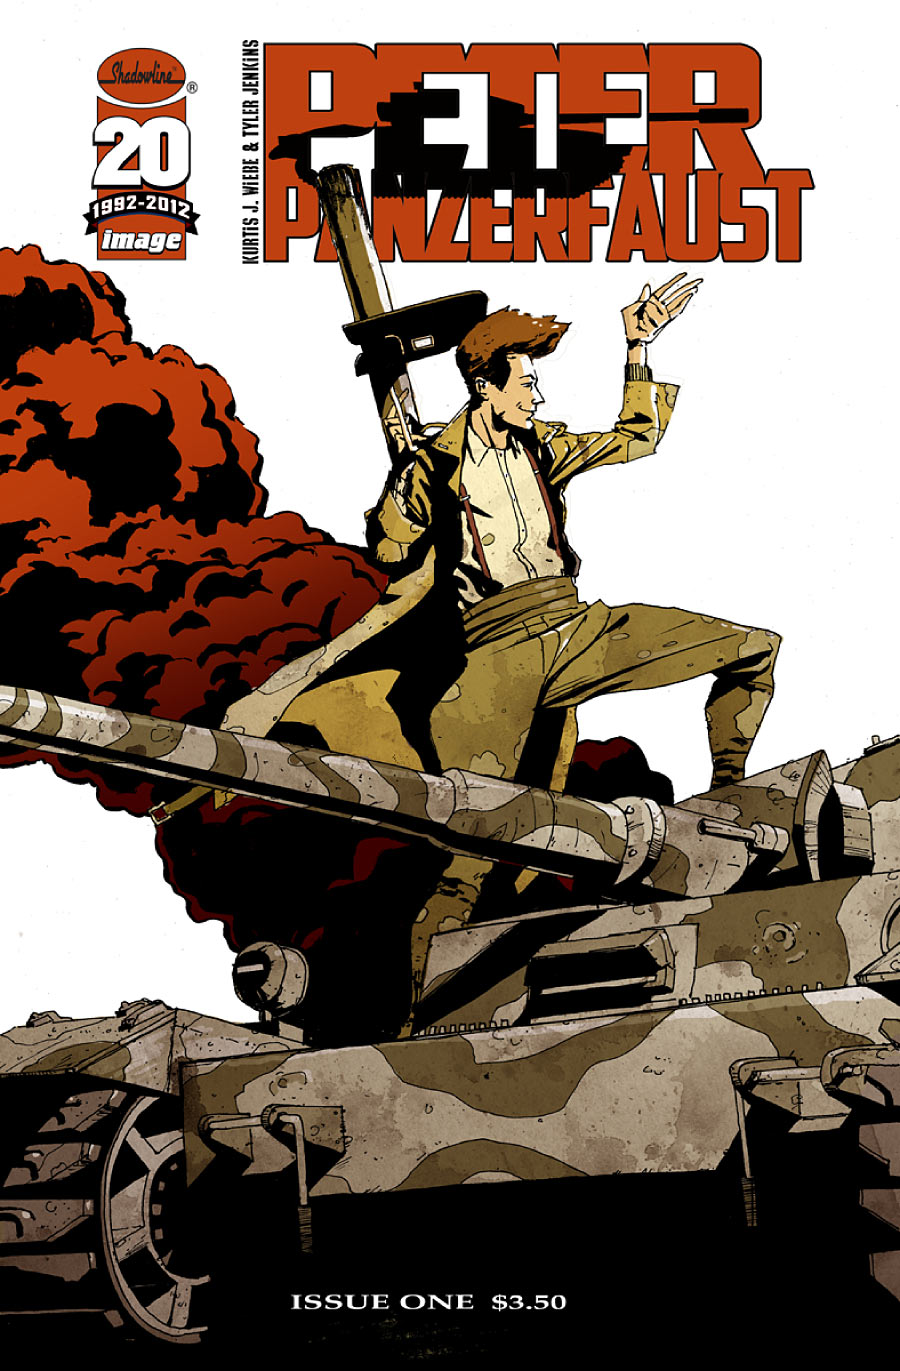 SDCC 2012: Kurtis Wiebe Signs Deal for possible Peter Panzerfaust TV Series